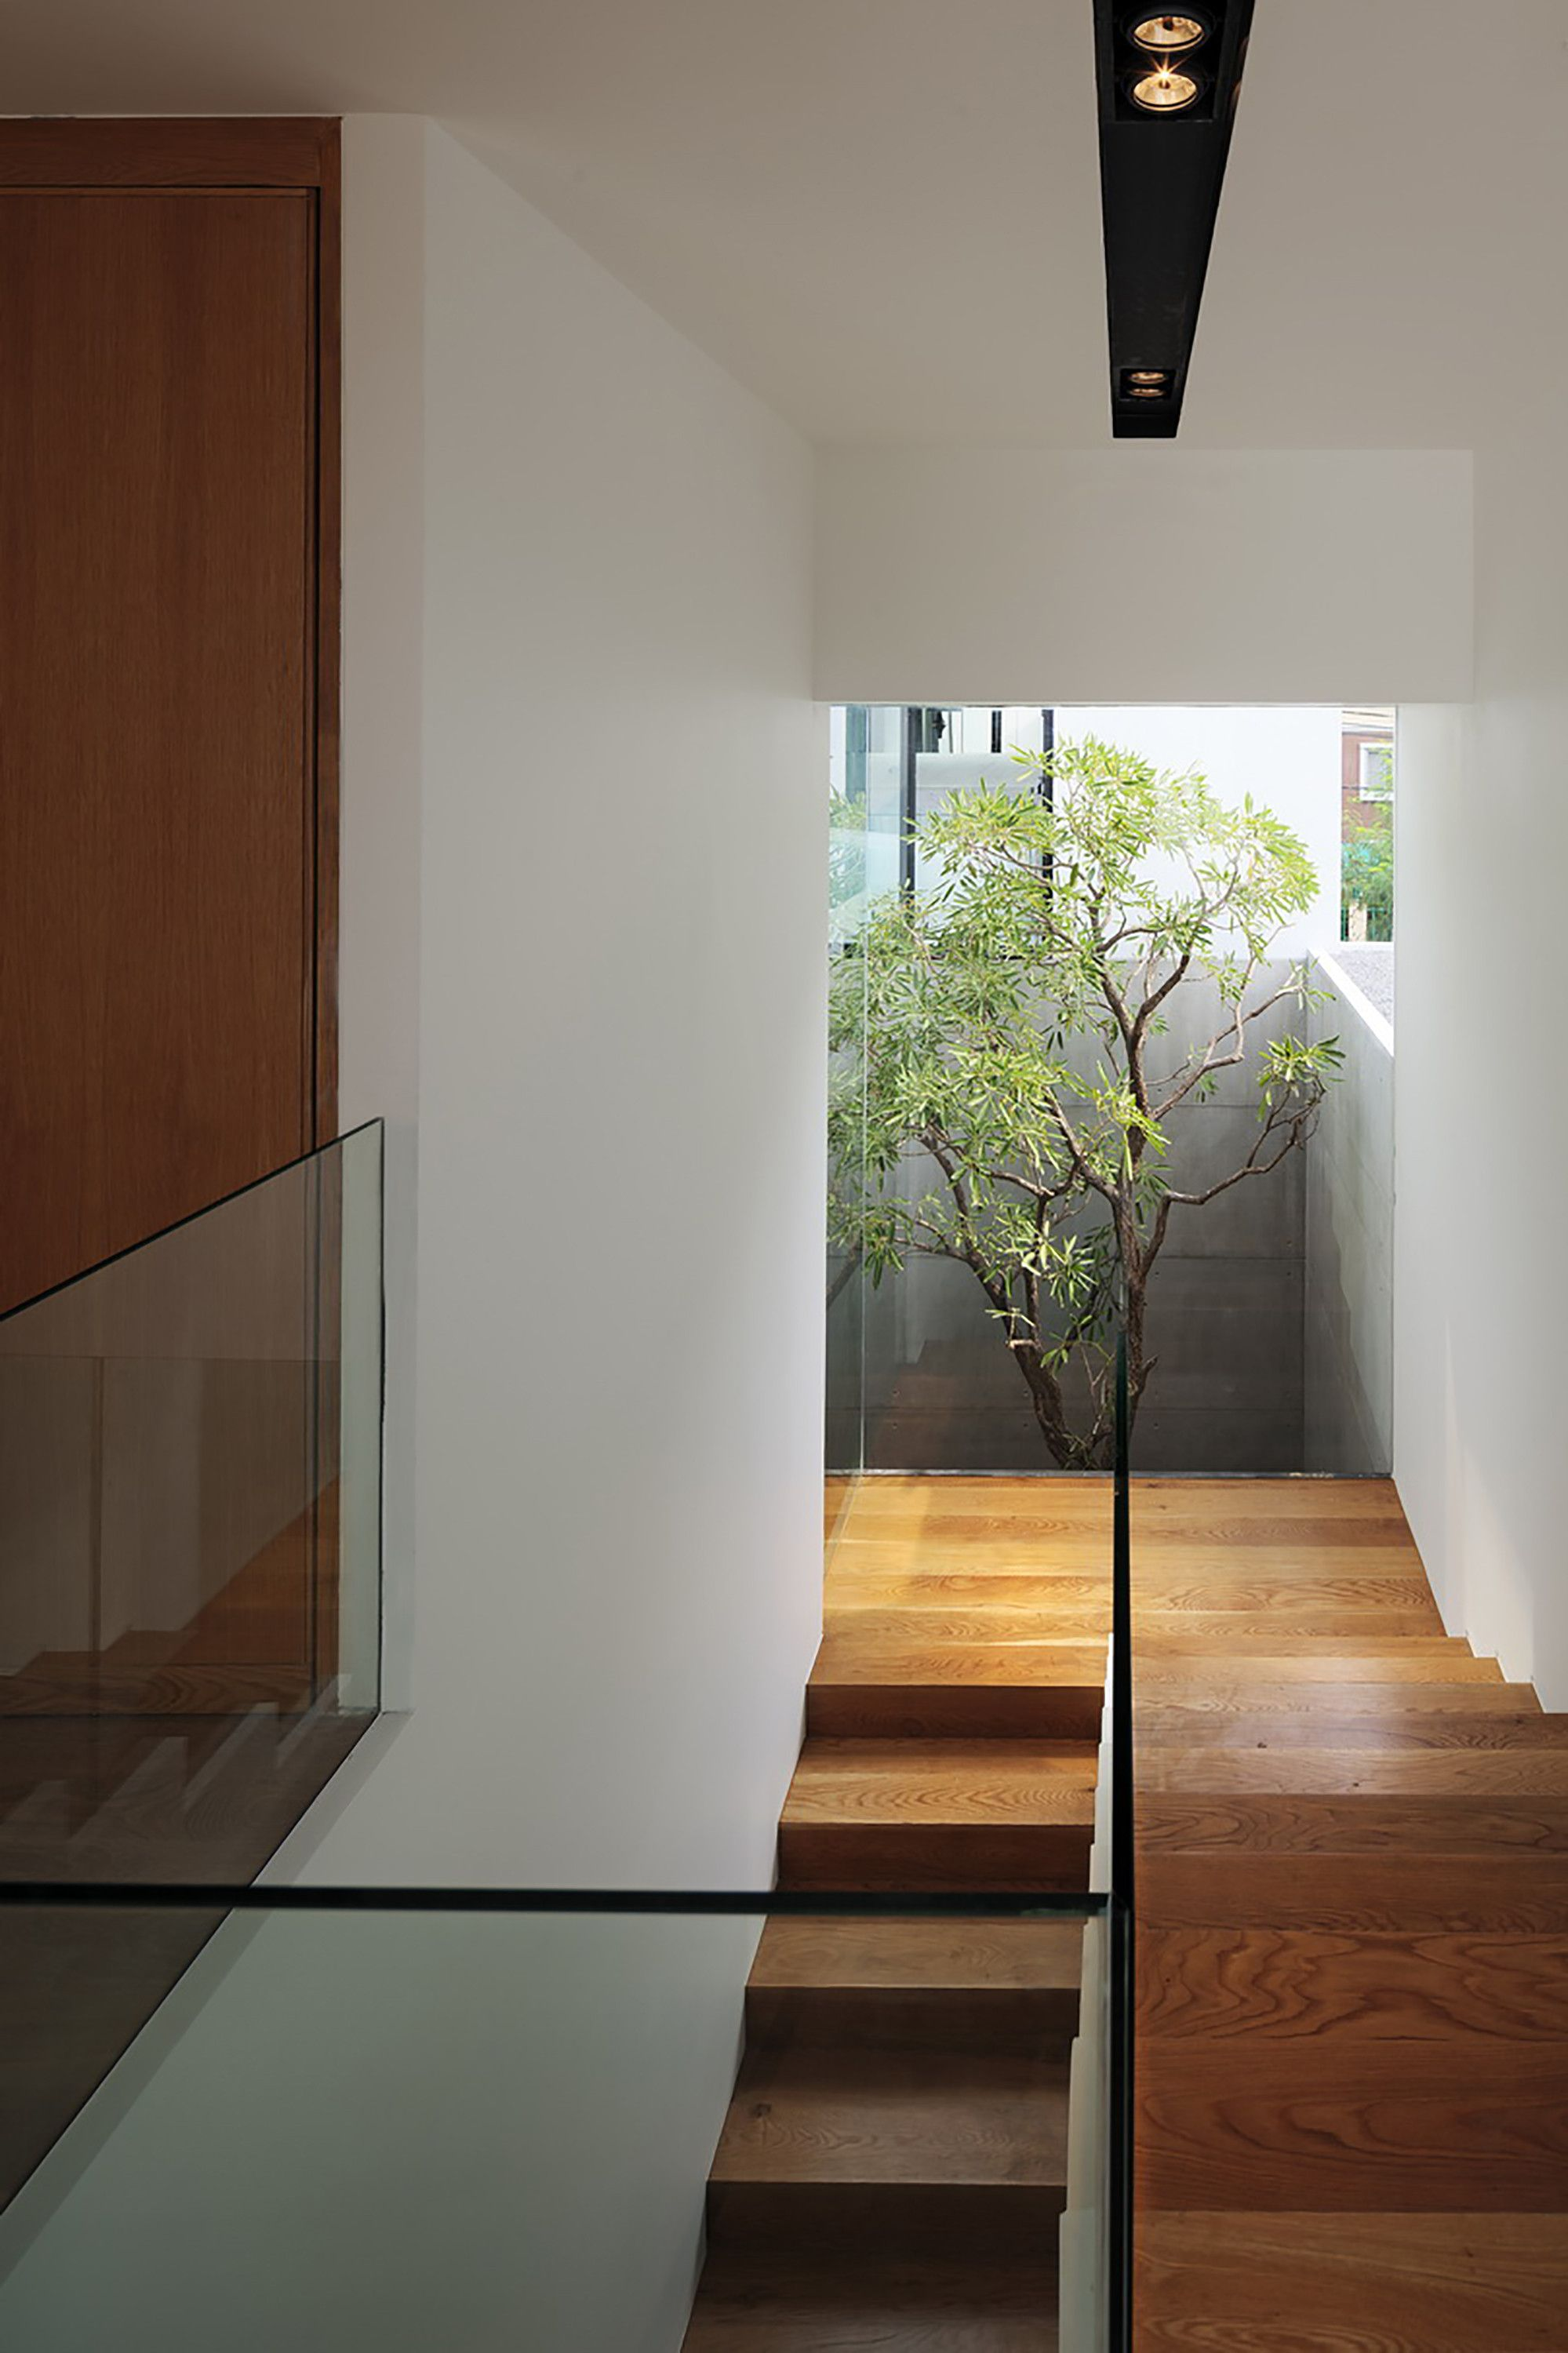 Gallery Of Yak01 Ayutt And Associates Design 9 画像あり